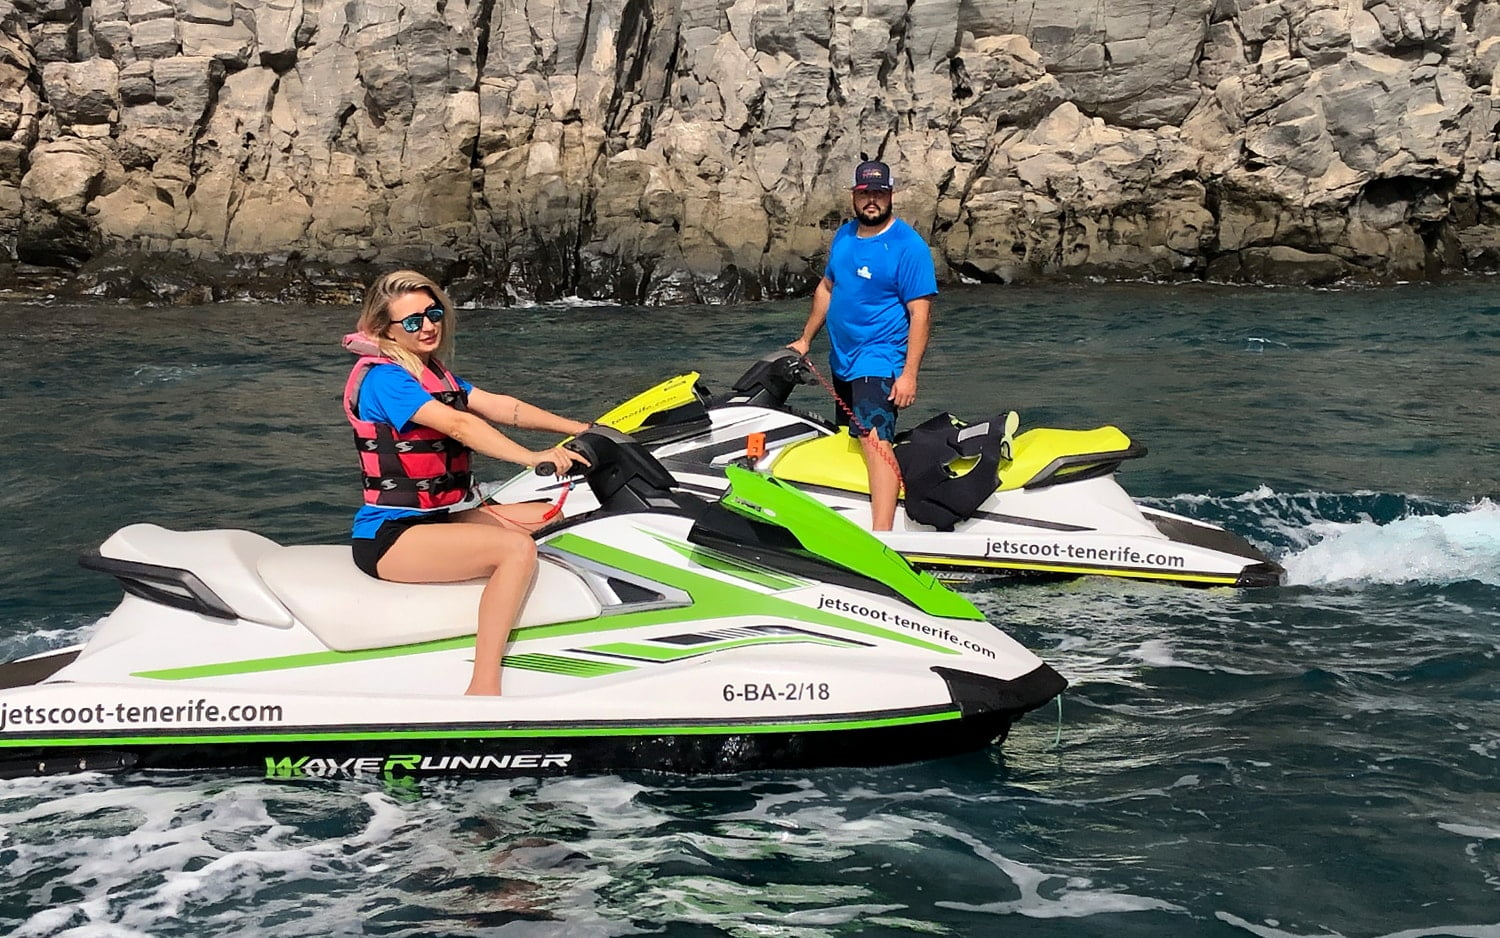 Jet Ski sunset for only 59€